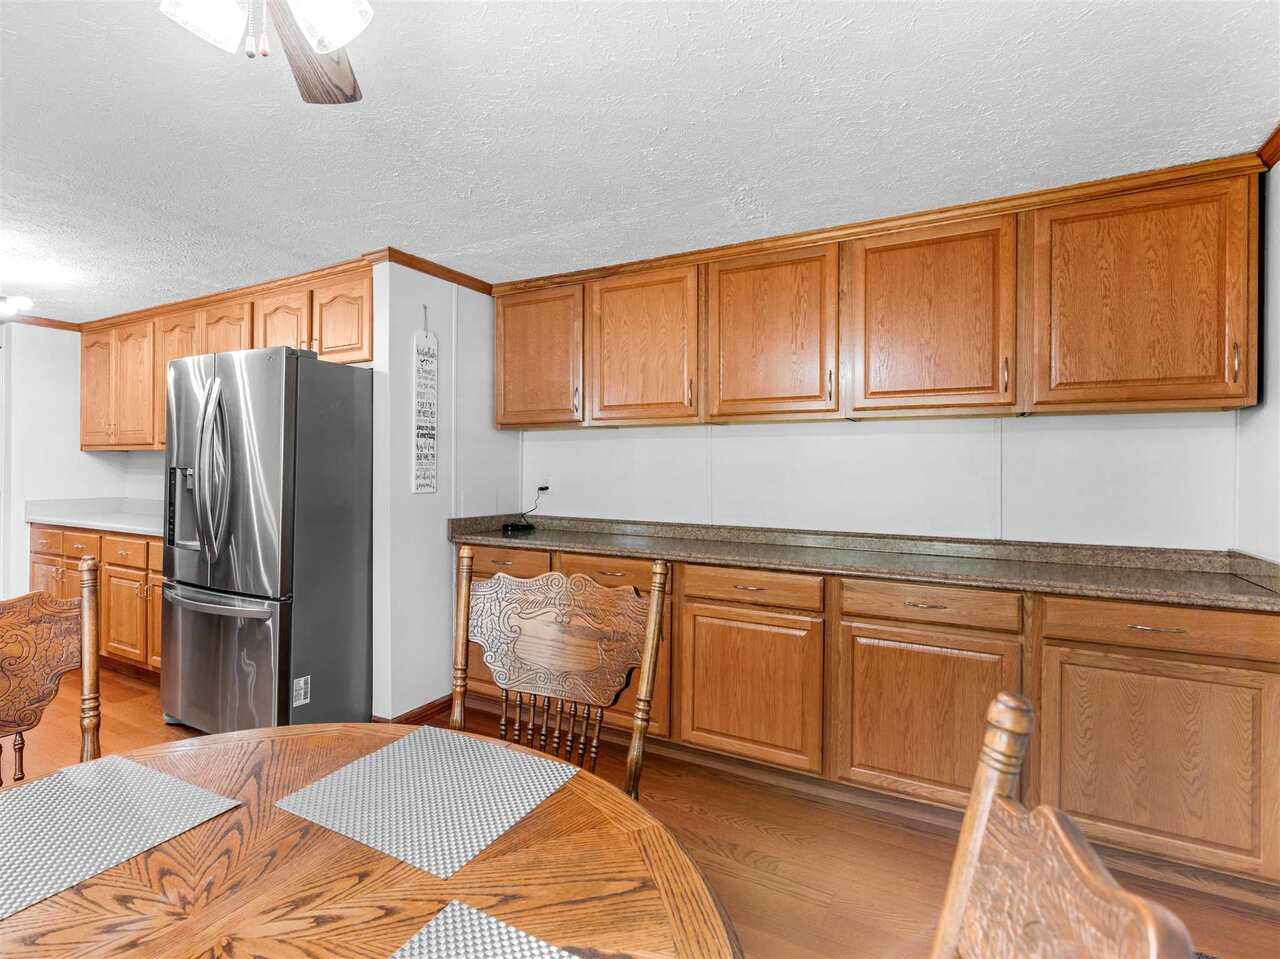 258 Country Kitchen Road Property Photo 6